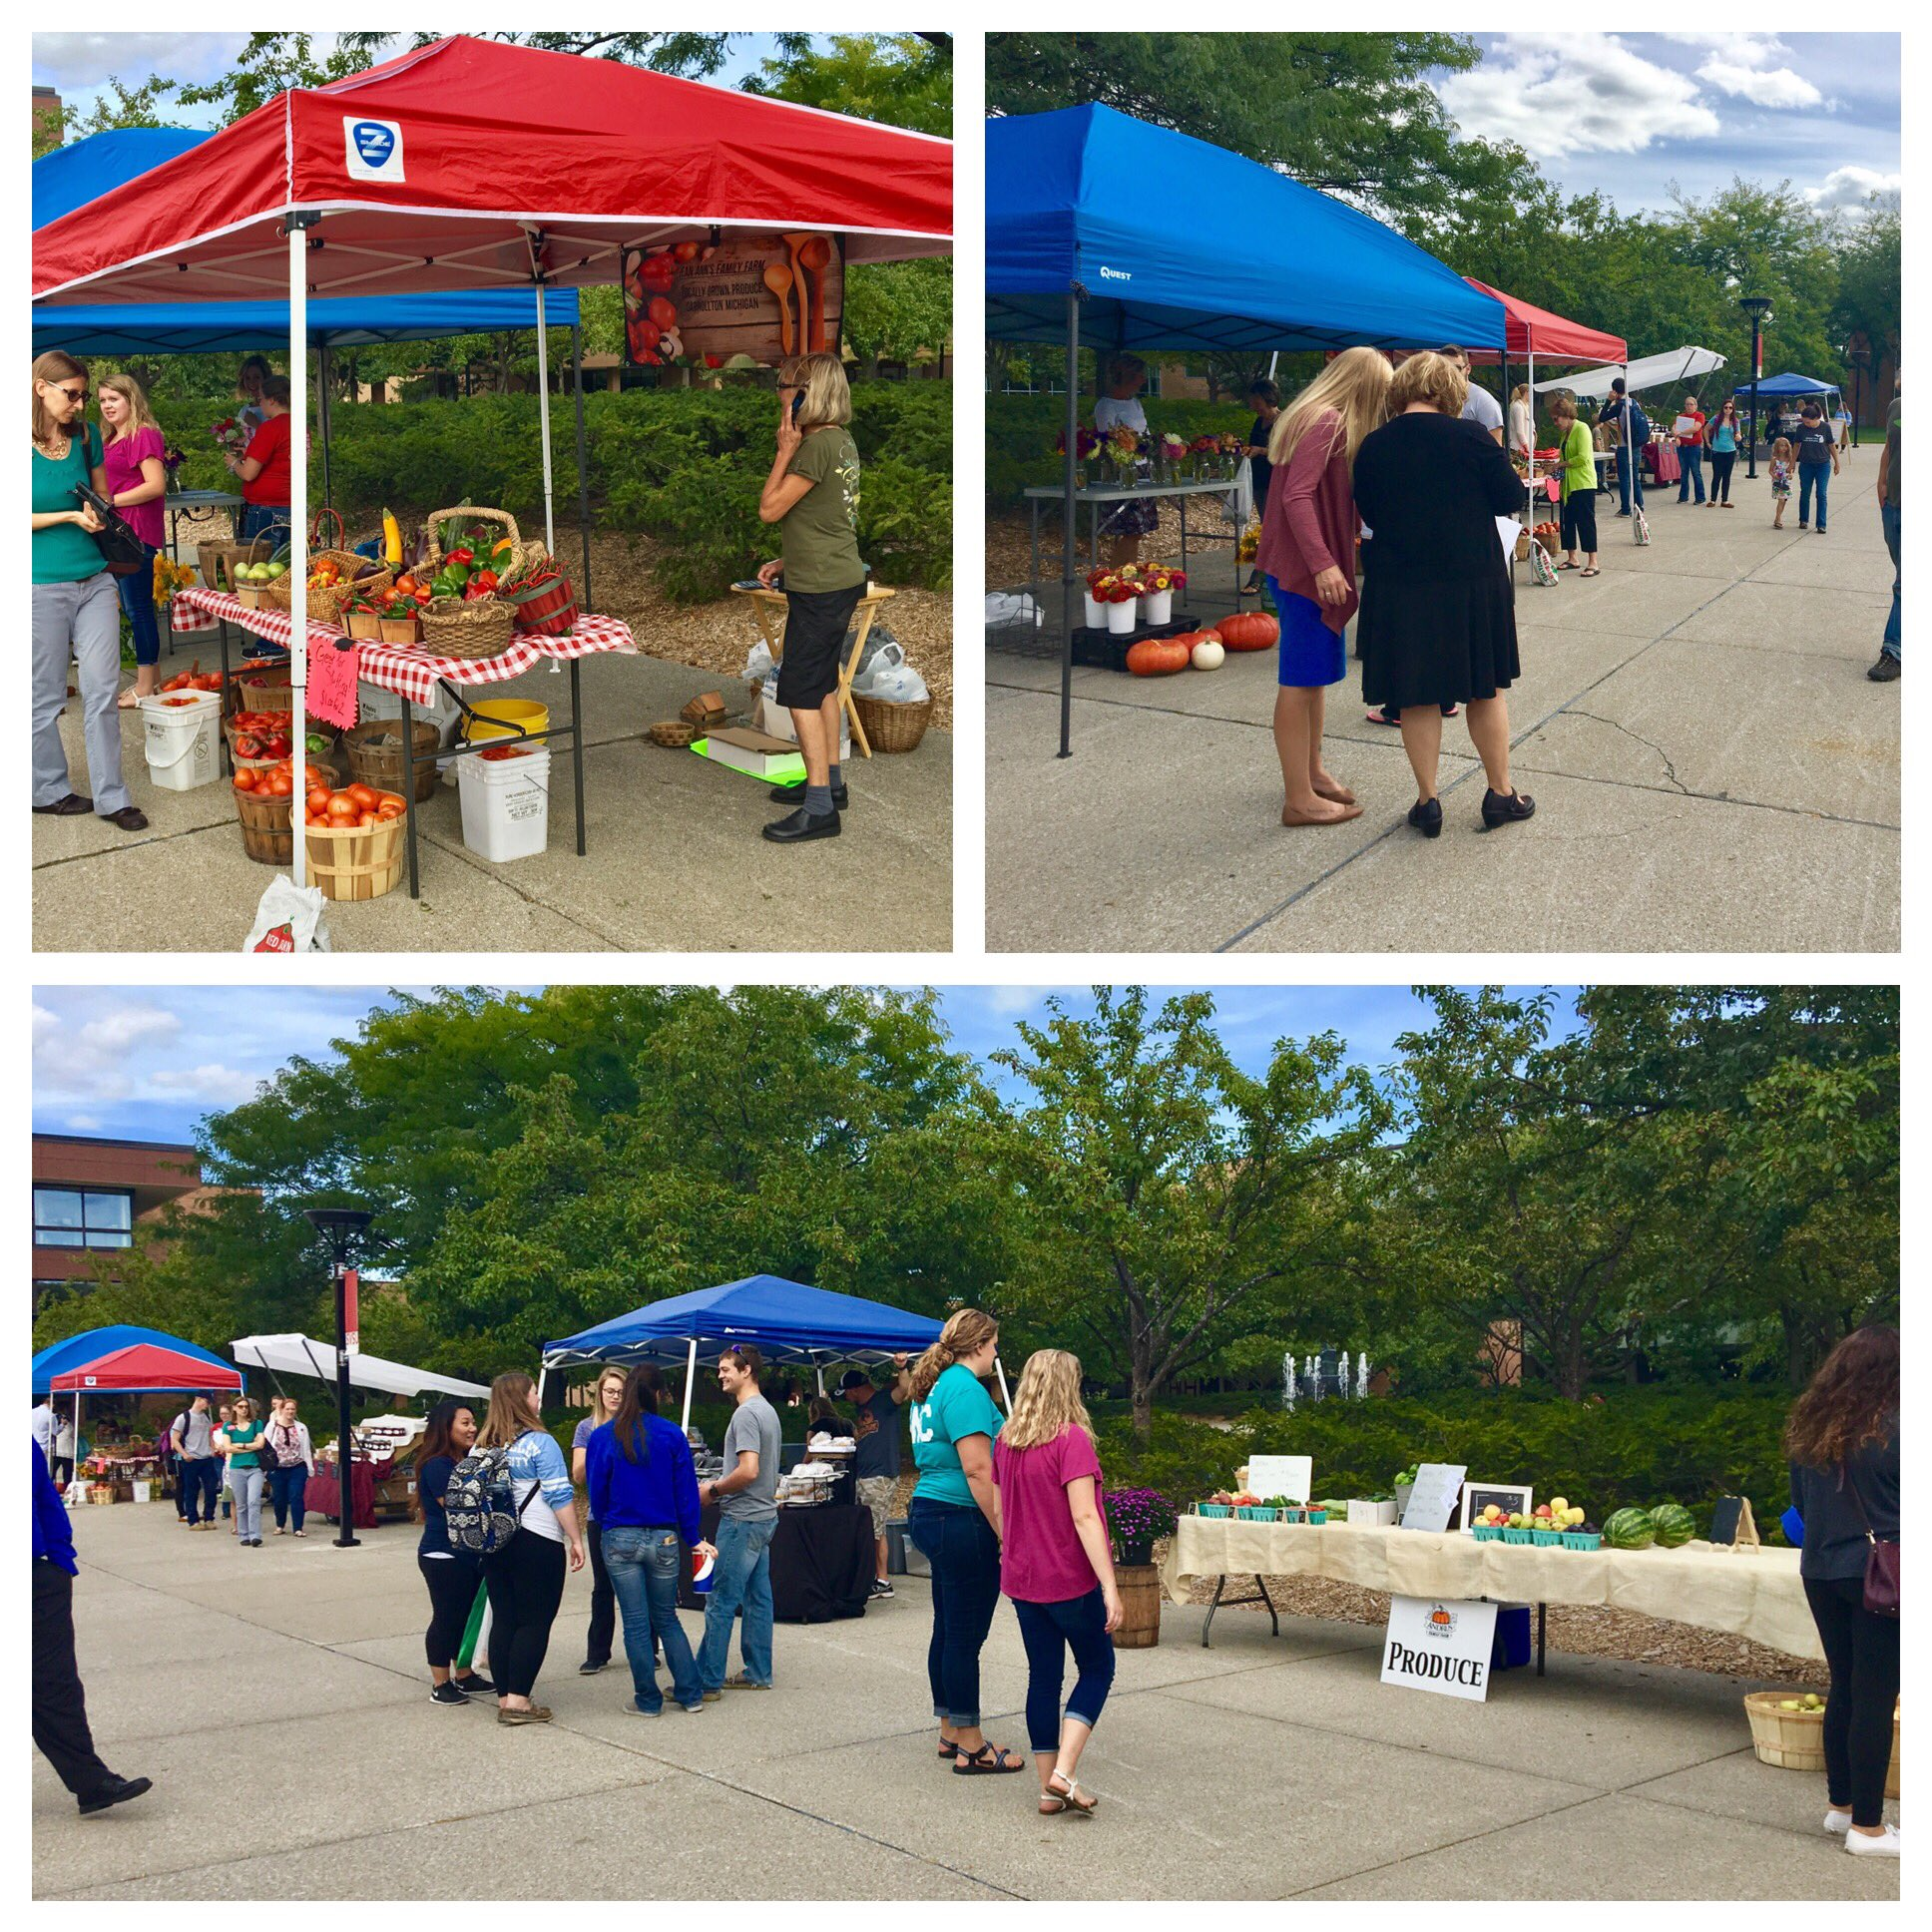 Go check out the SVSU farmers market! They're here until 5:30 today with some great stuff! #WeCardinal https://t.co/qboWPYzSyf